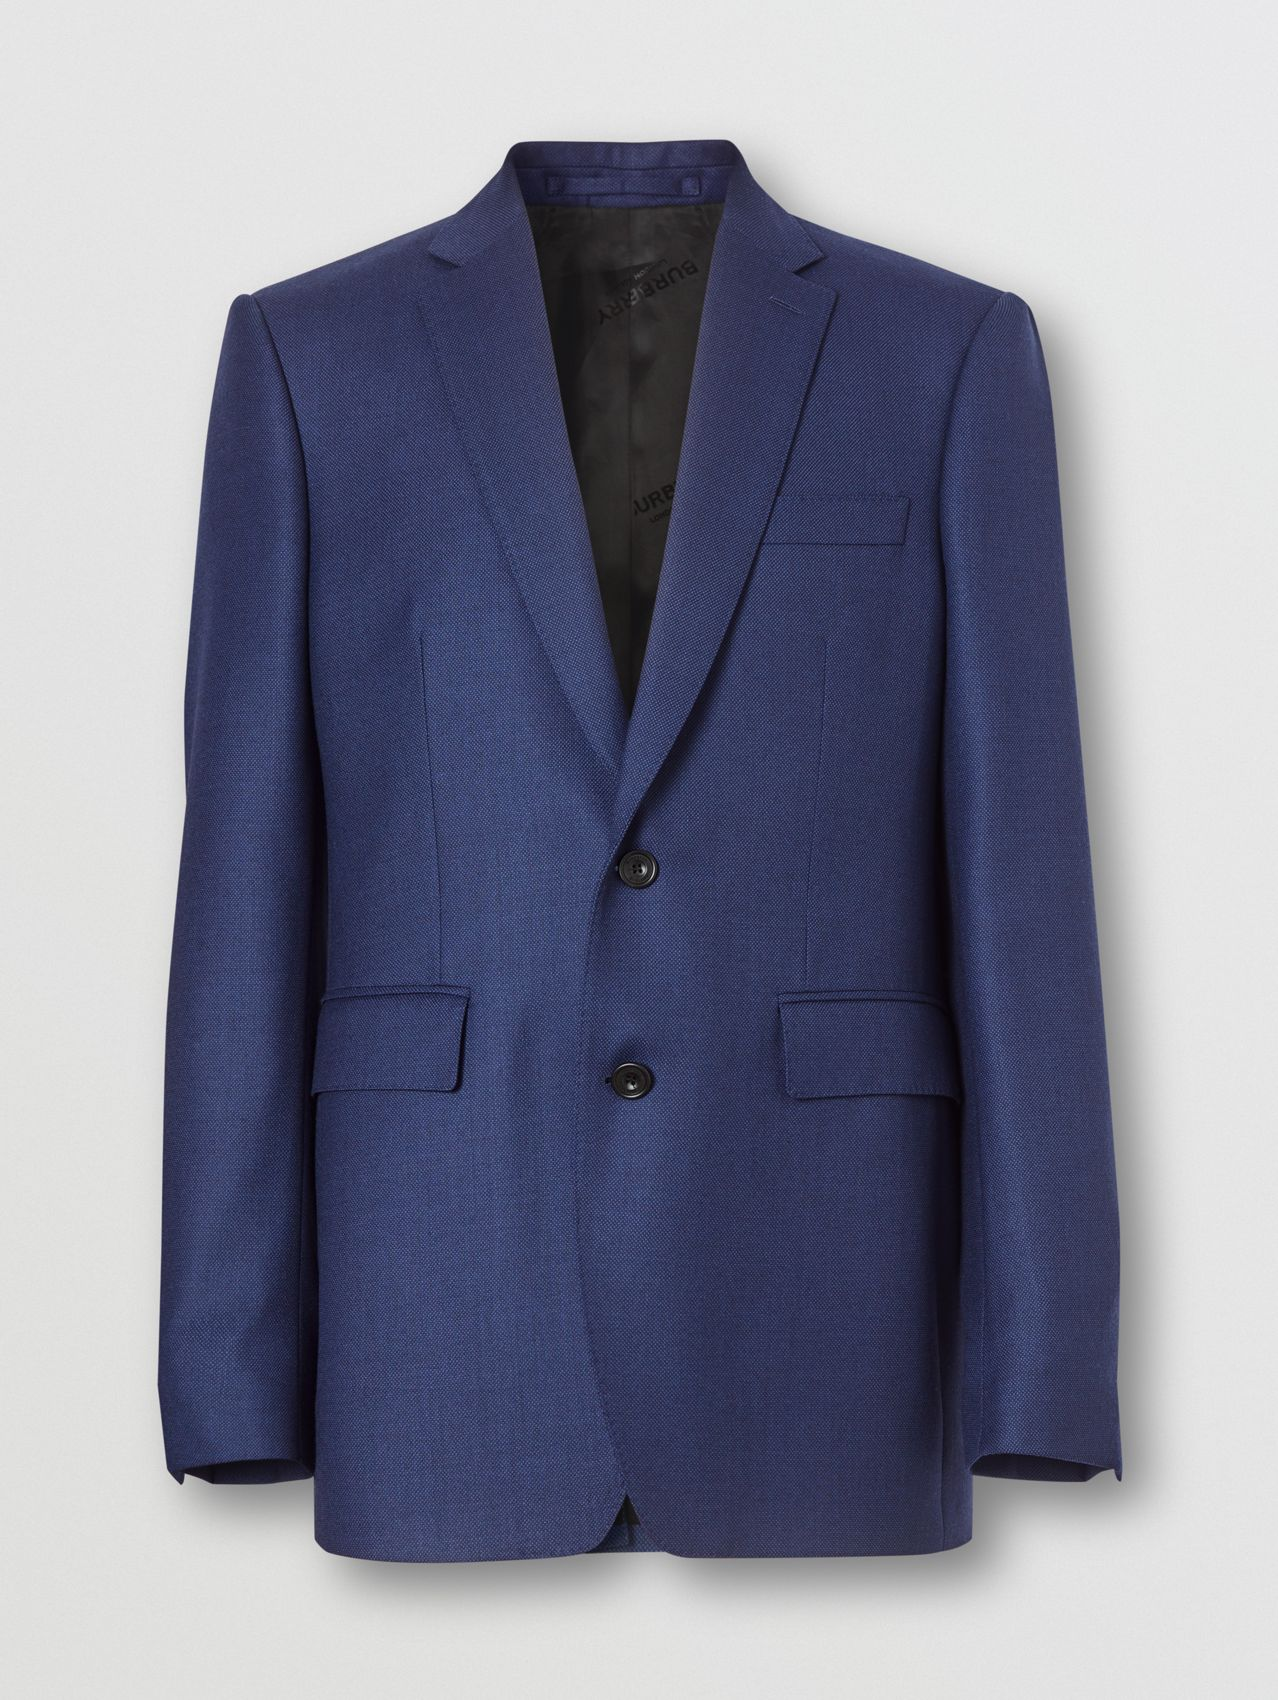 Classic Fit Birdseye Wool Tailored Jacket (Bright Navy)